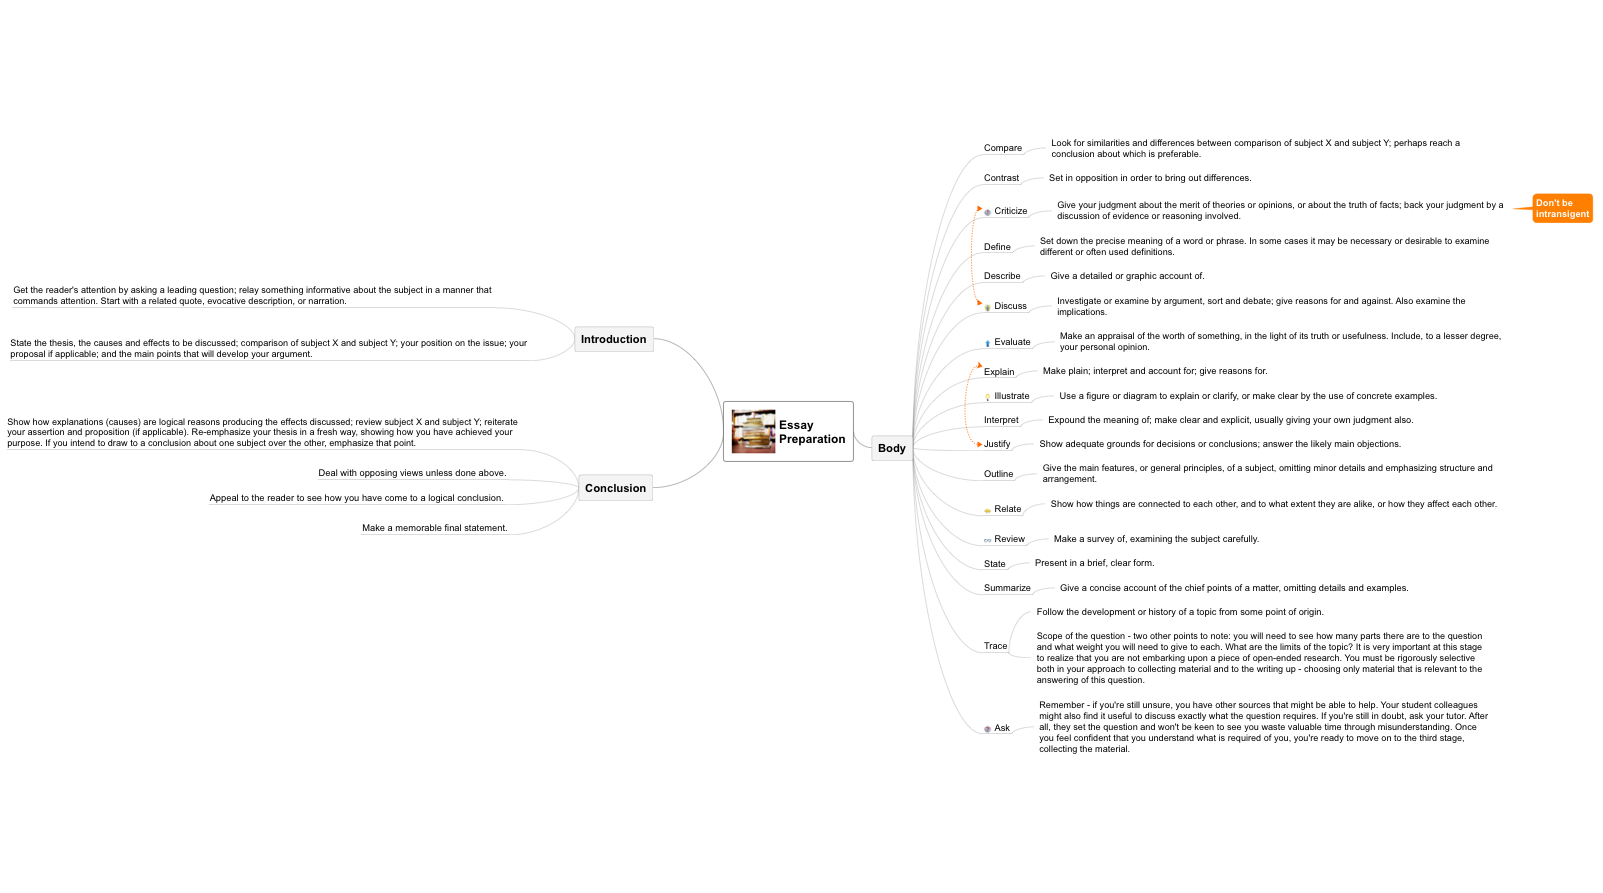 Essay preparation mind map example